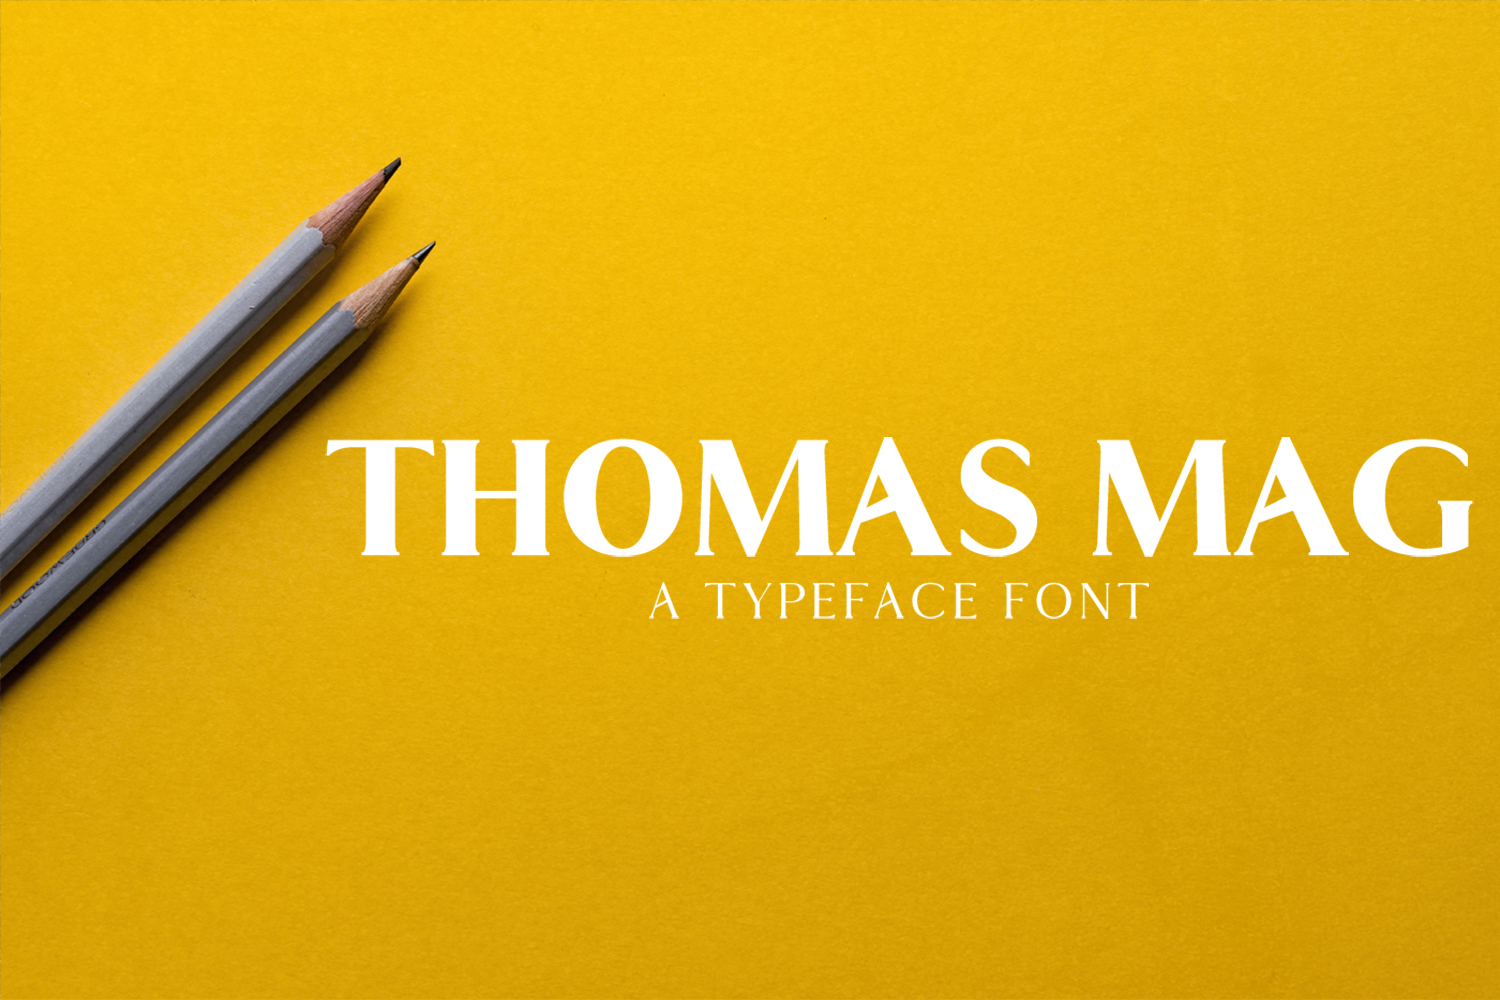 Thomas Mag Serif 9 Fonts Family Pack example image 1